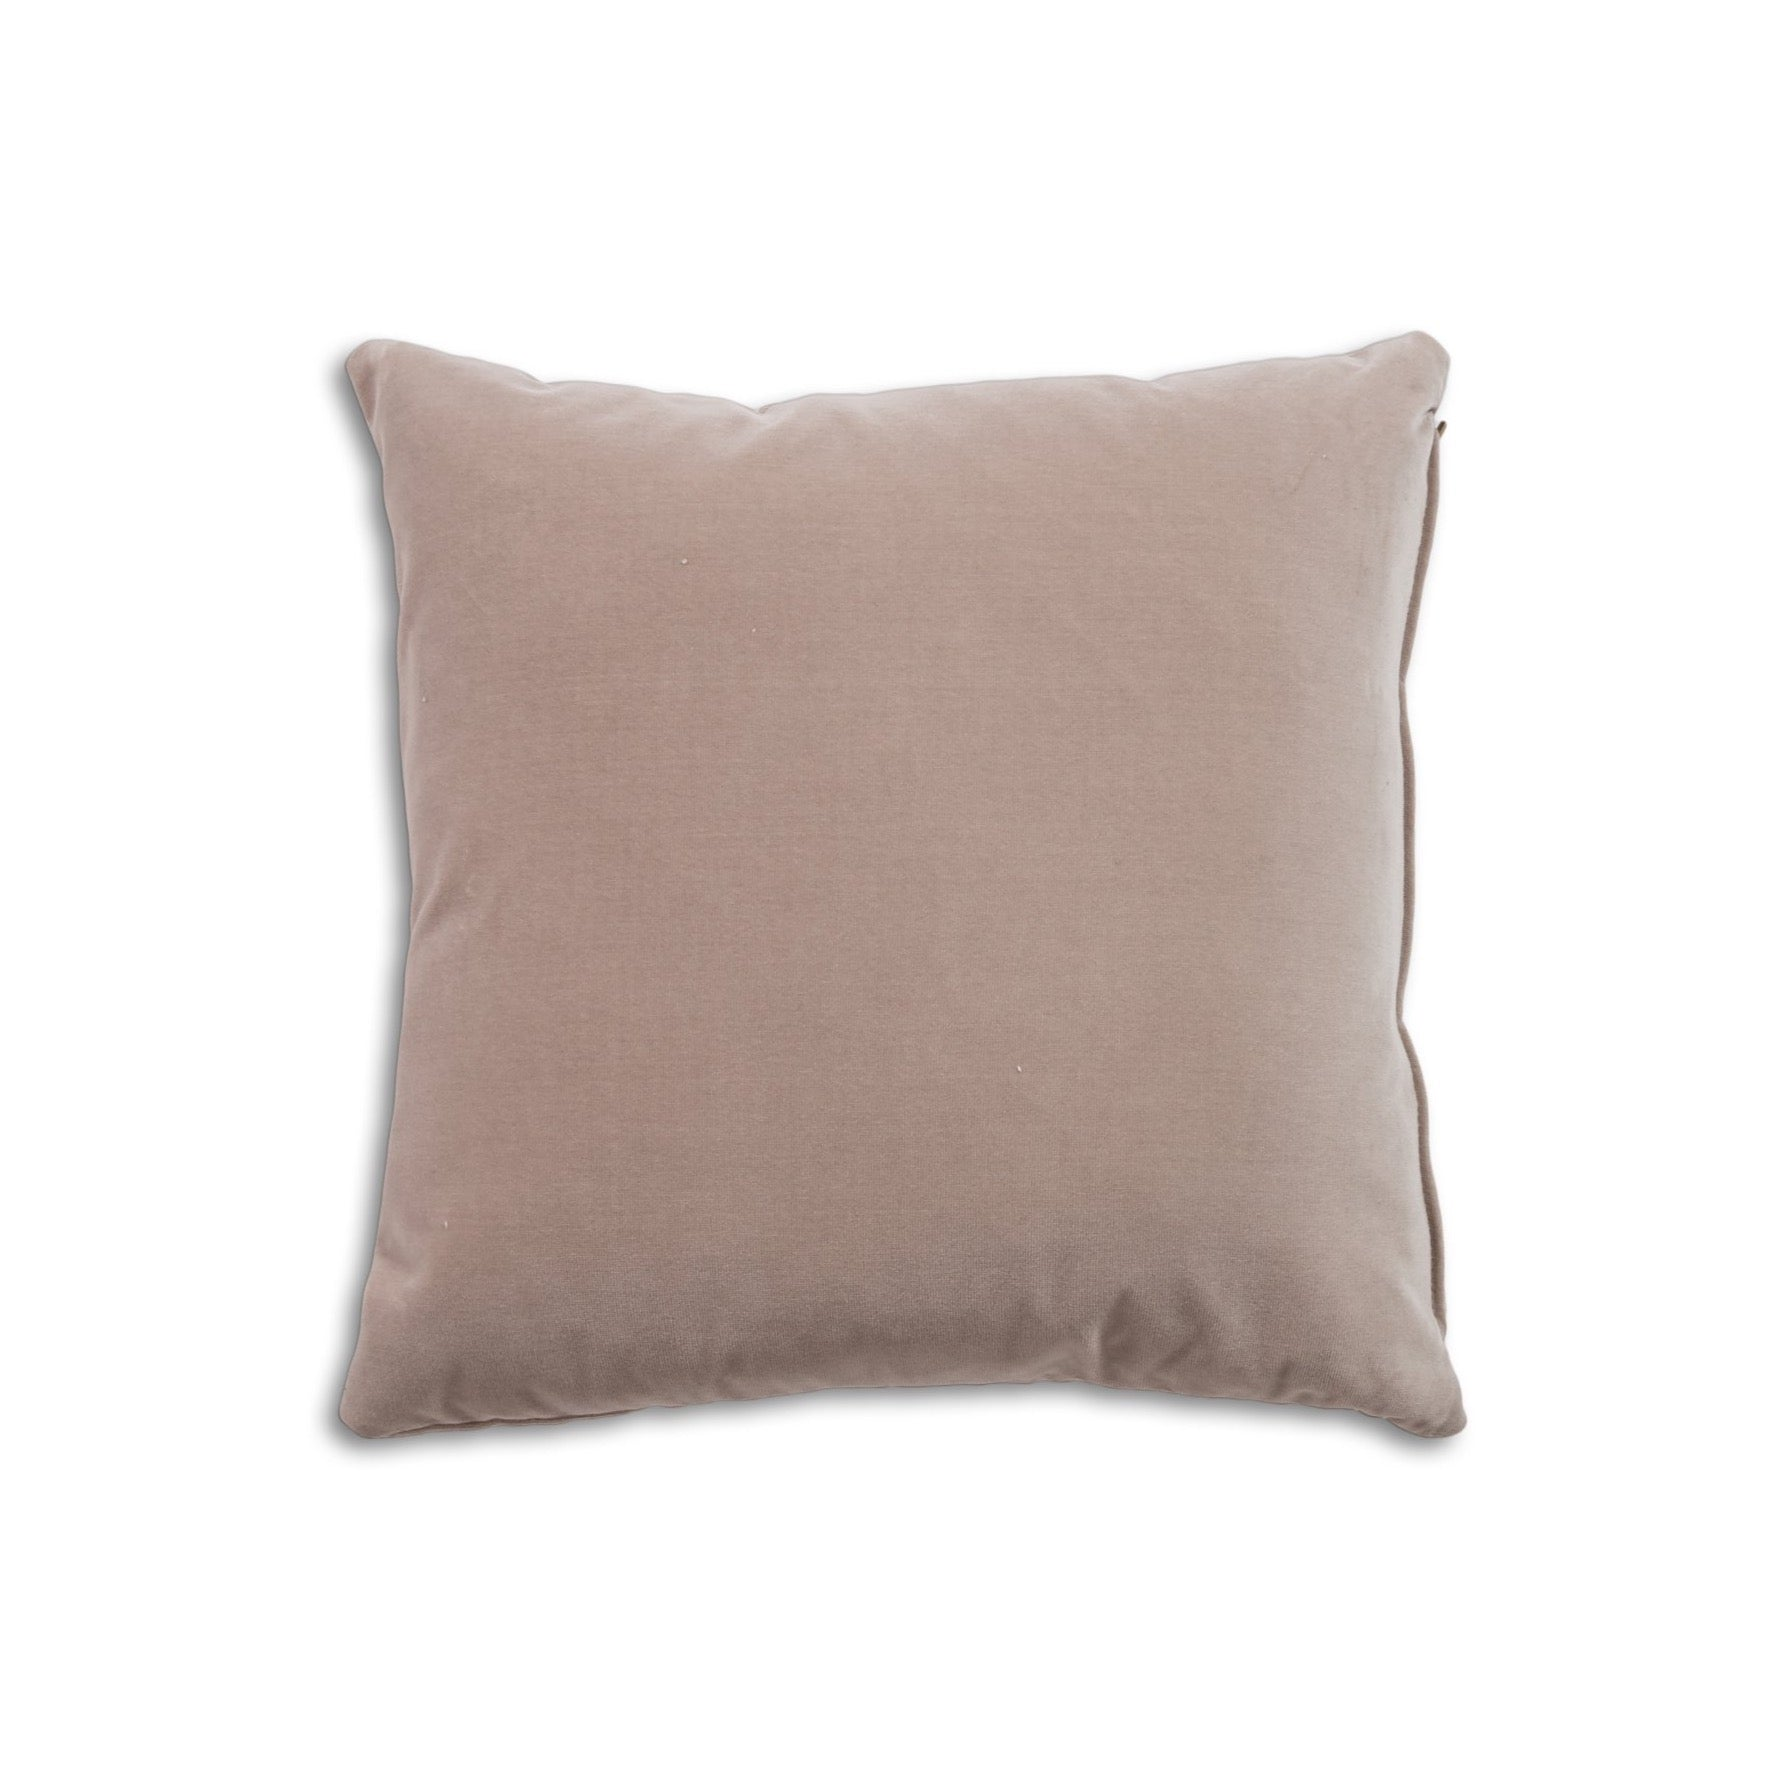 "Breathe 18"" Square Feather Cushion - Oyster Velvet"